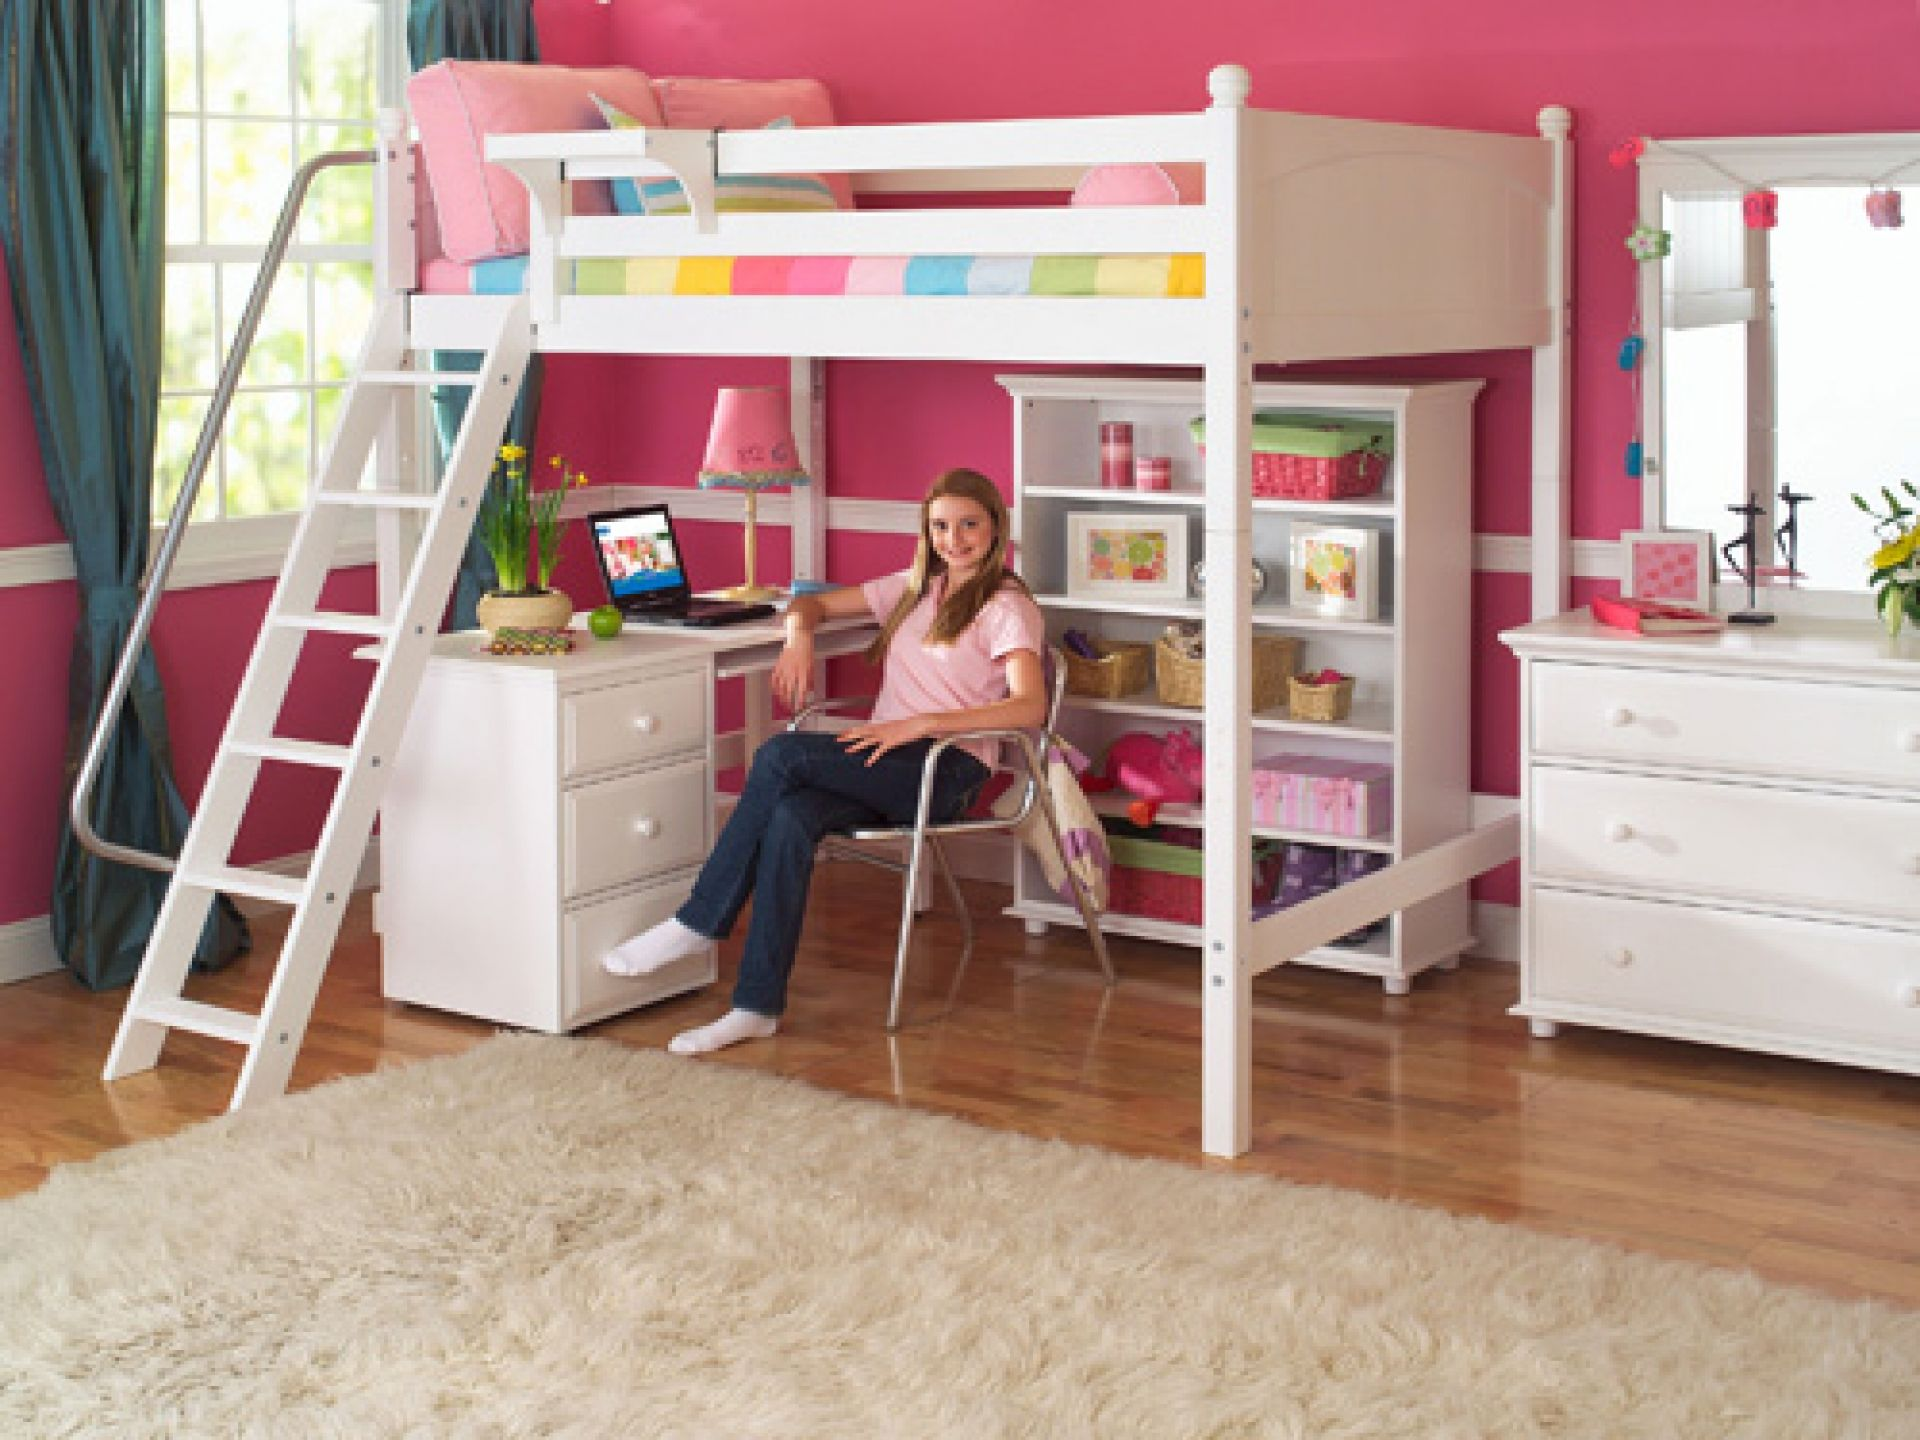 fascinating teenage girl bedrooms bunk bed | Pin by bangun on Girl Bedroom Inspirations | Bedroom loft ...